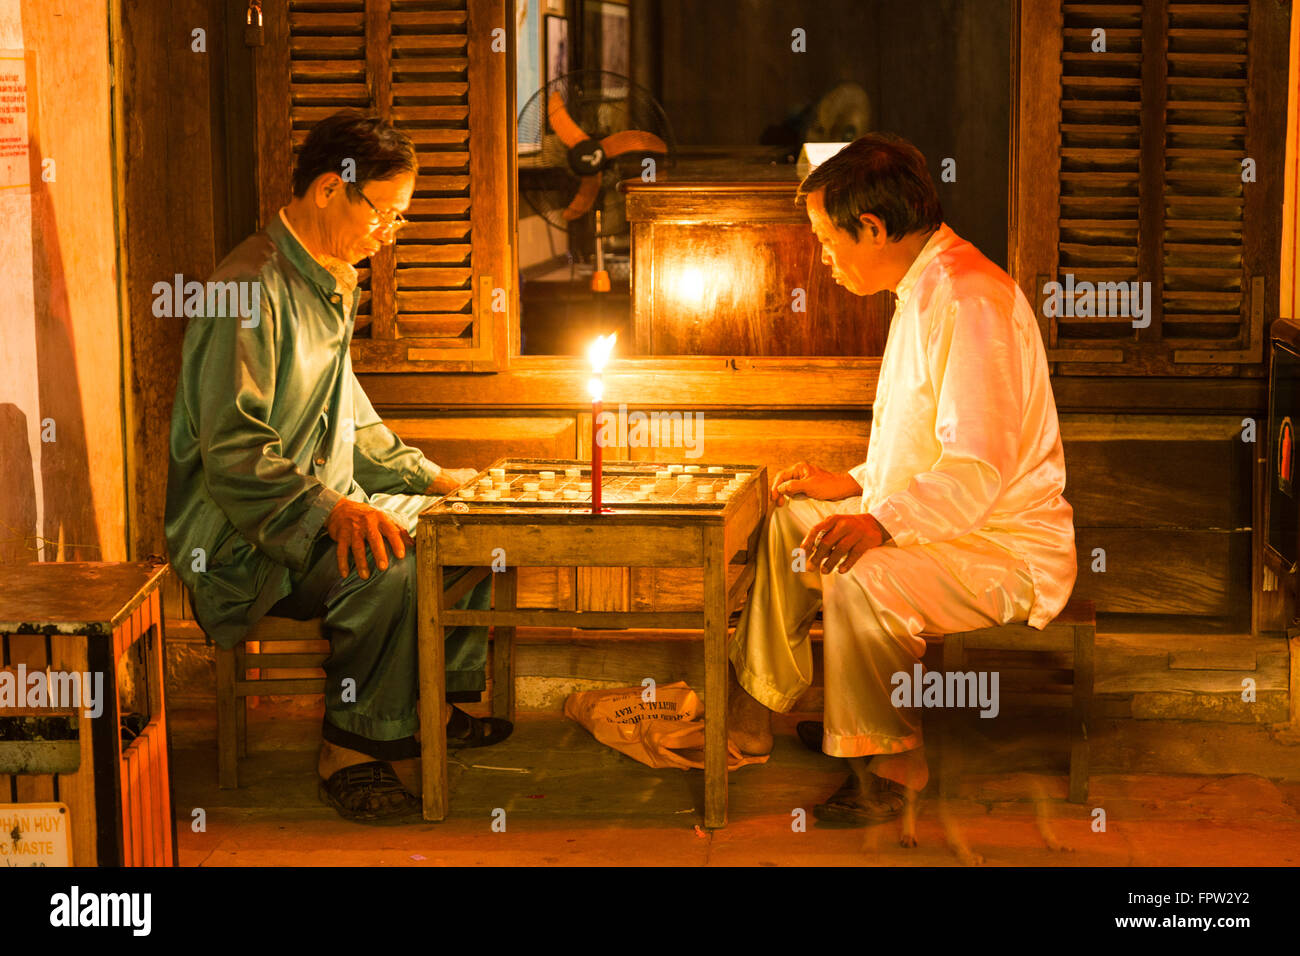 Men playing at the light of a candle a board game, Old Town of Hoi An, Vietnam Stock Photo